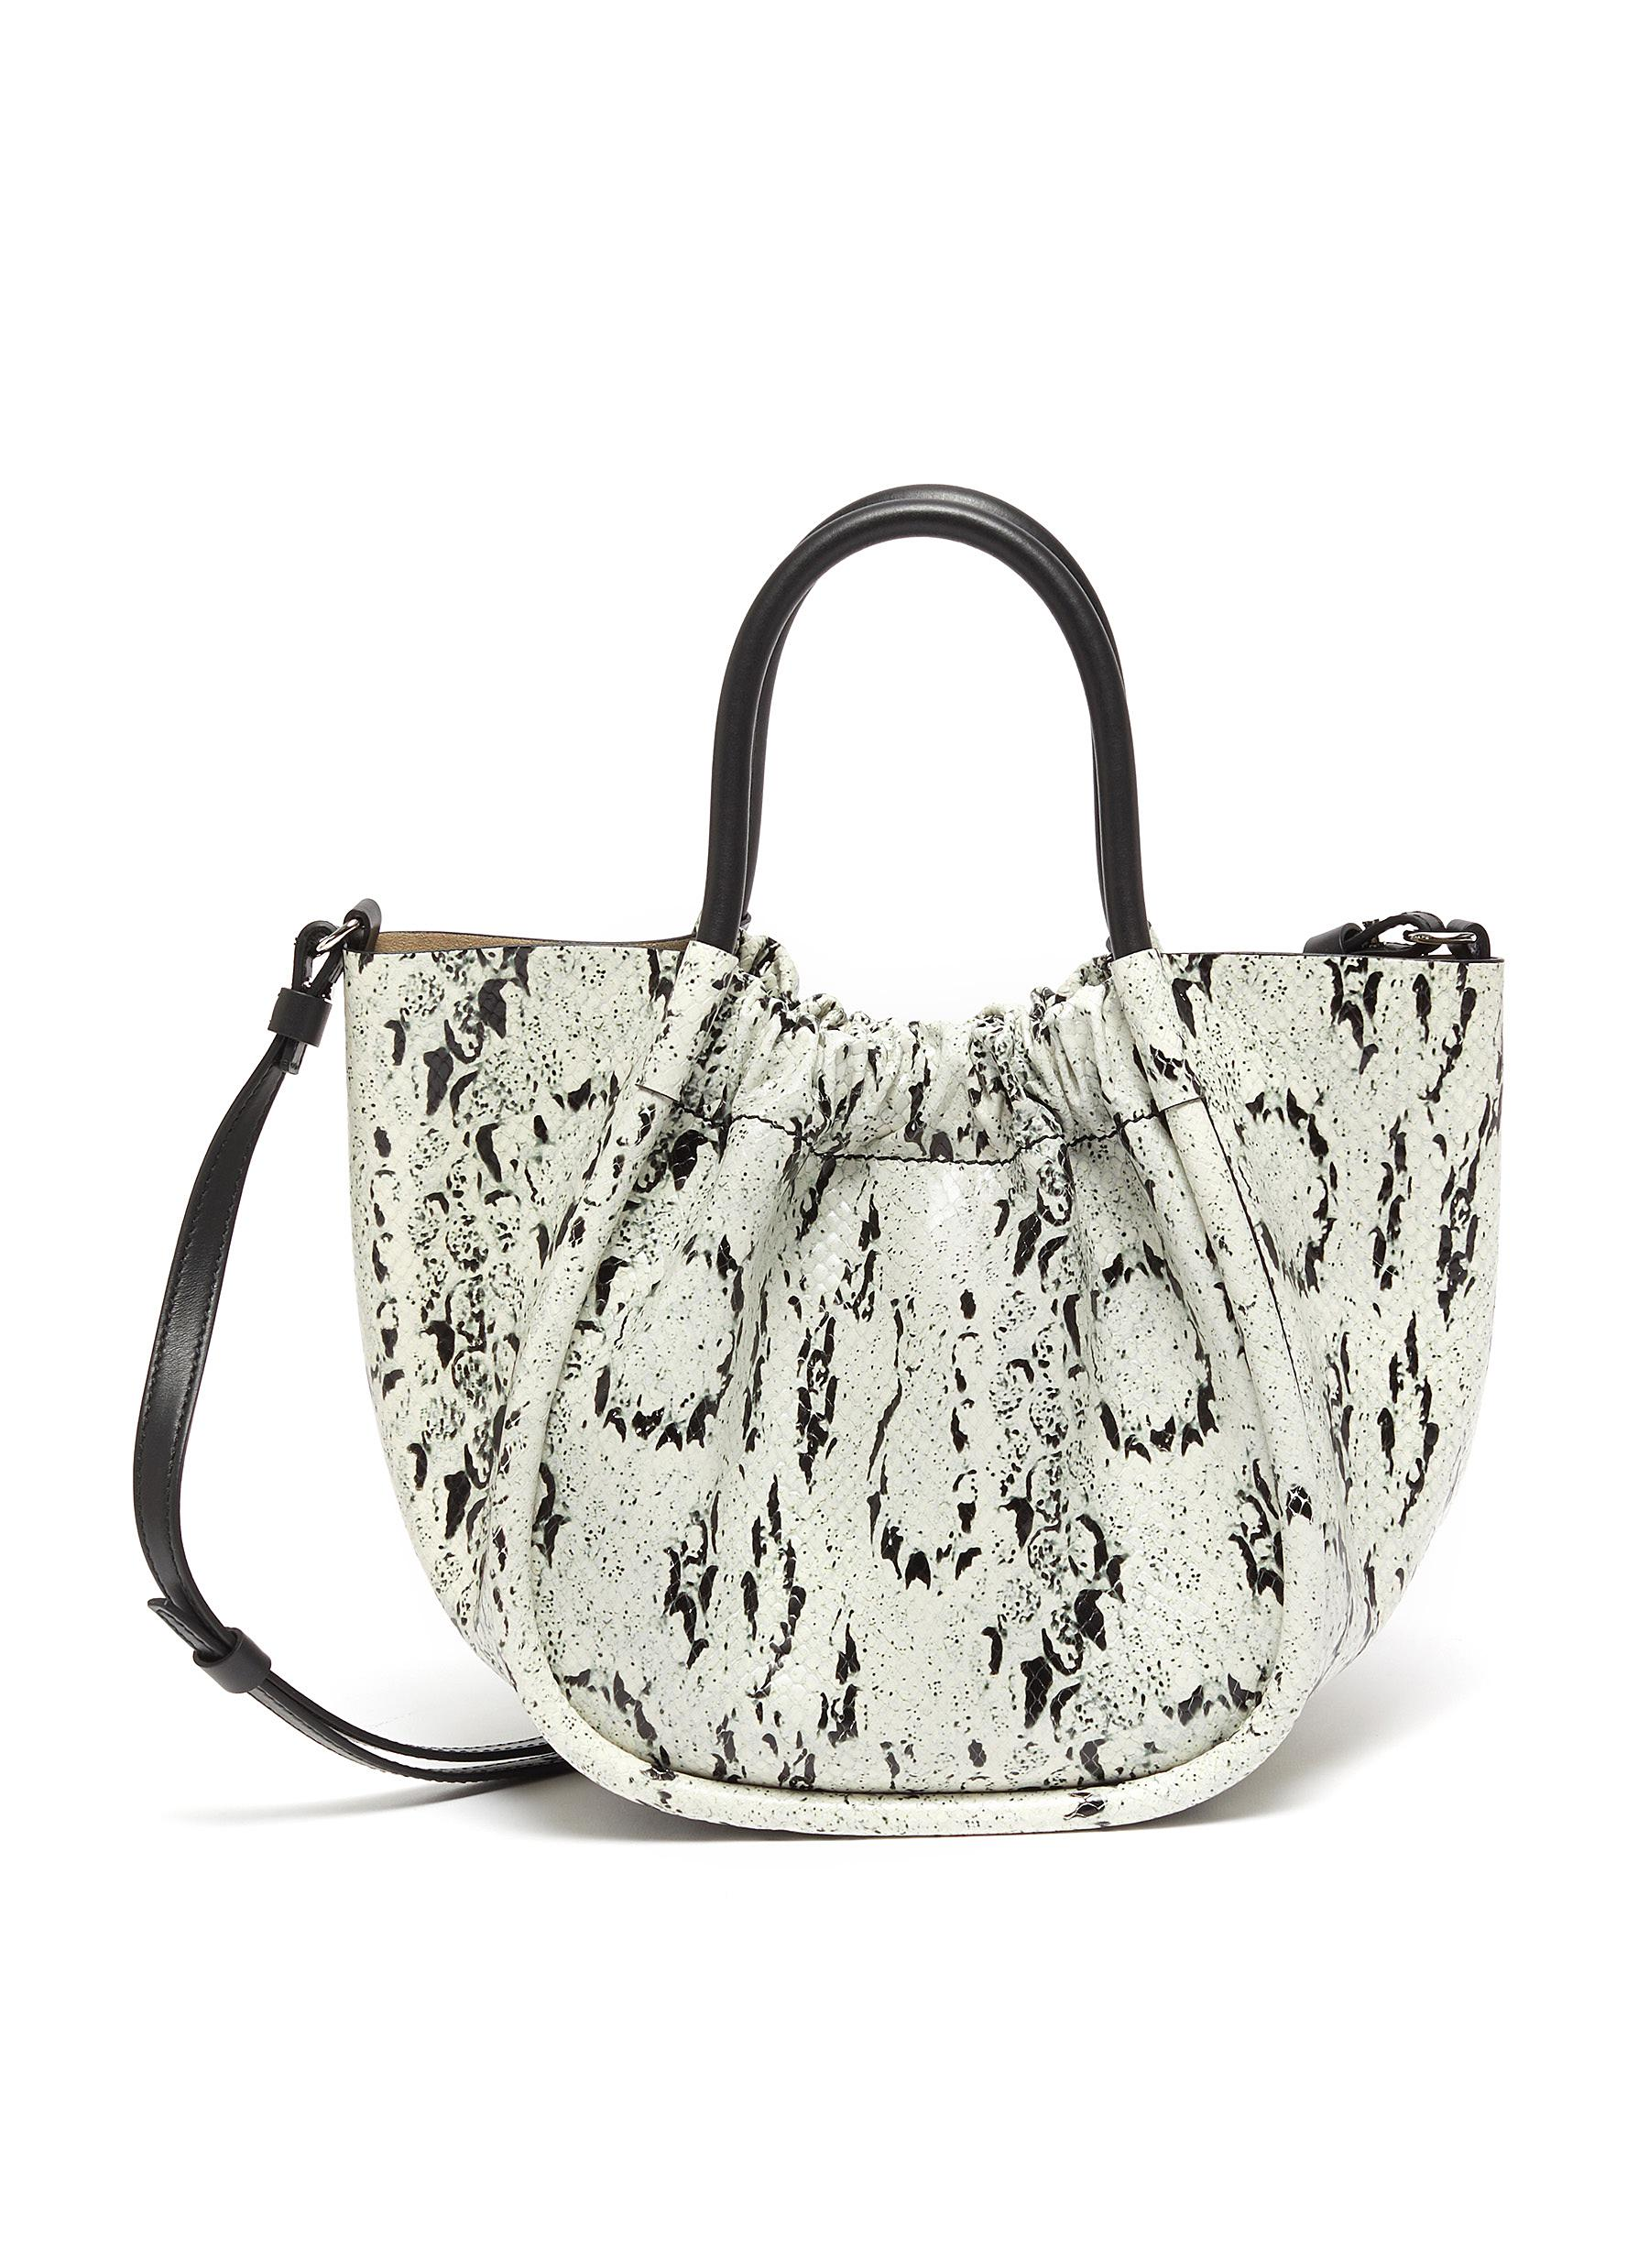 Proenza Schouler RUCHED SNAKE EMBOSSED LEATHER TOTE